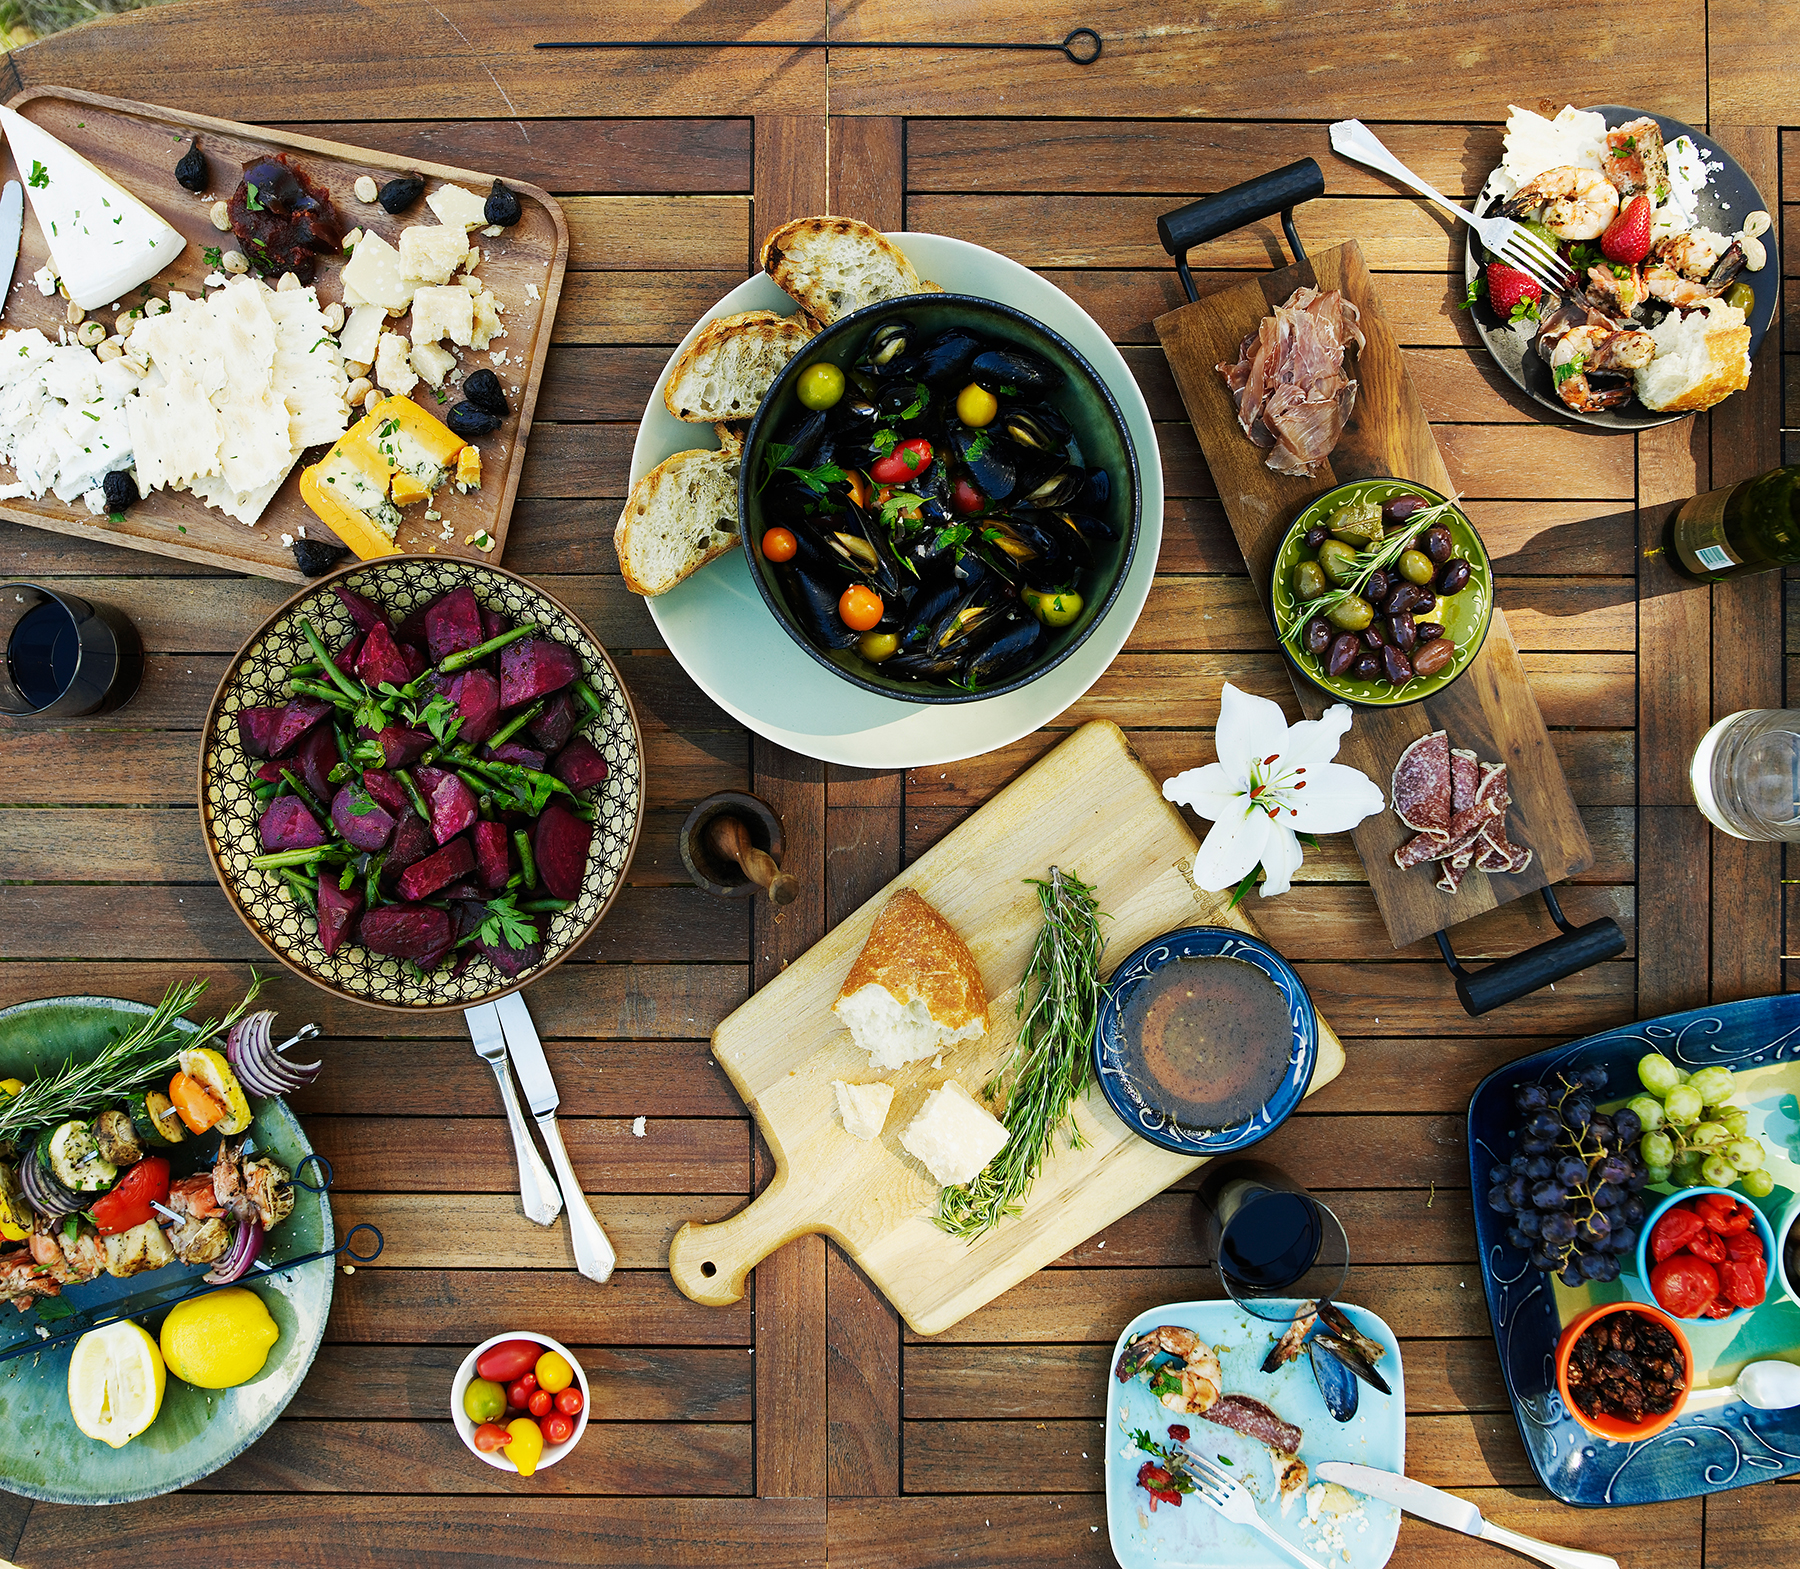 Lunch spread on picnic table